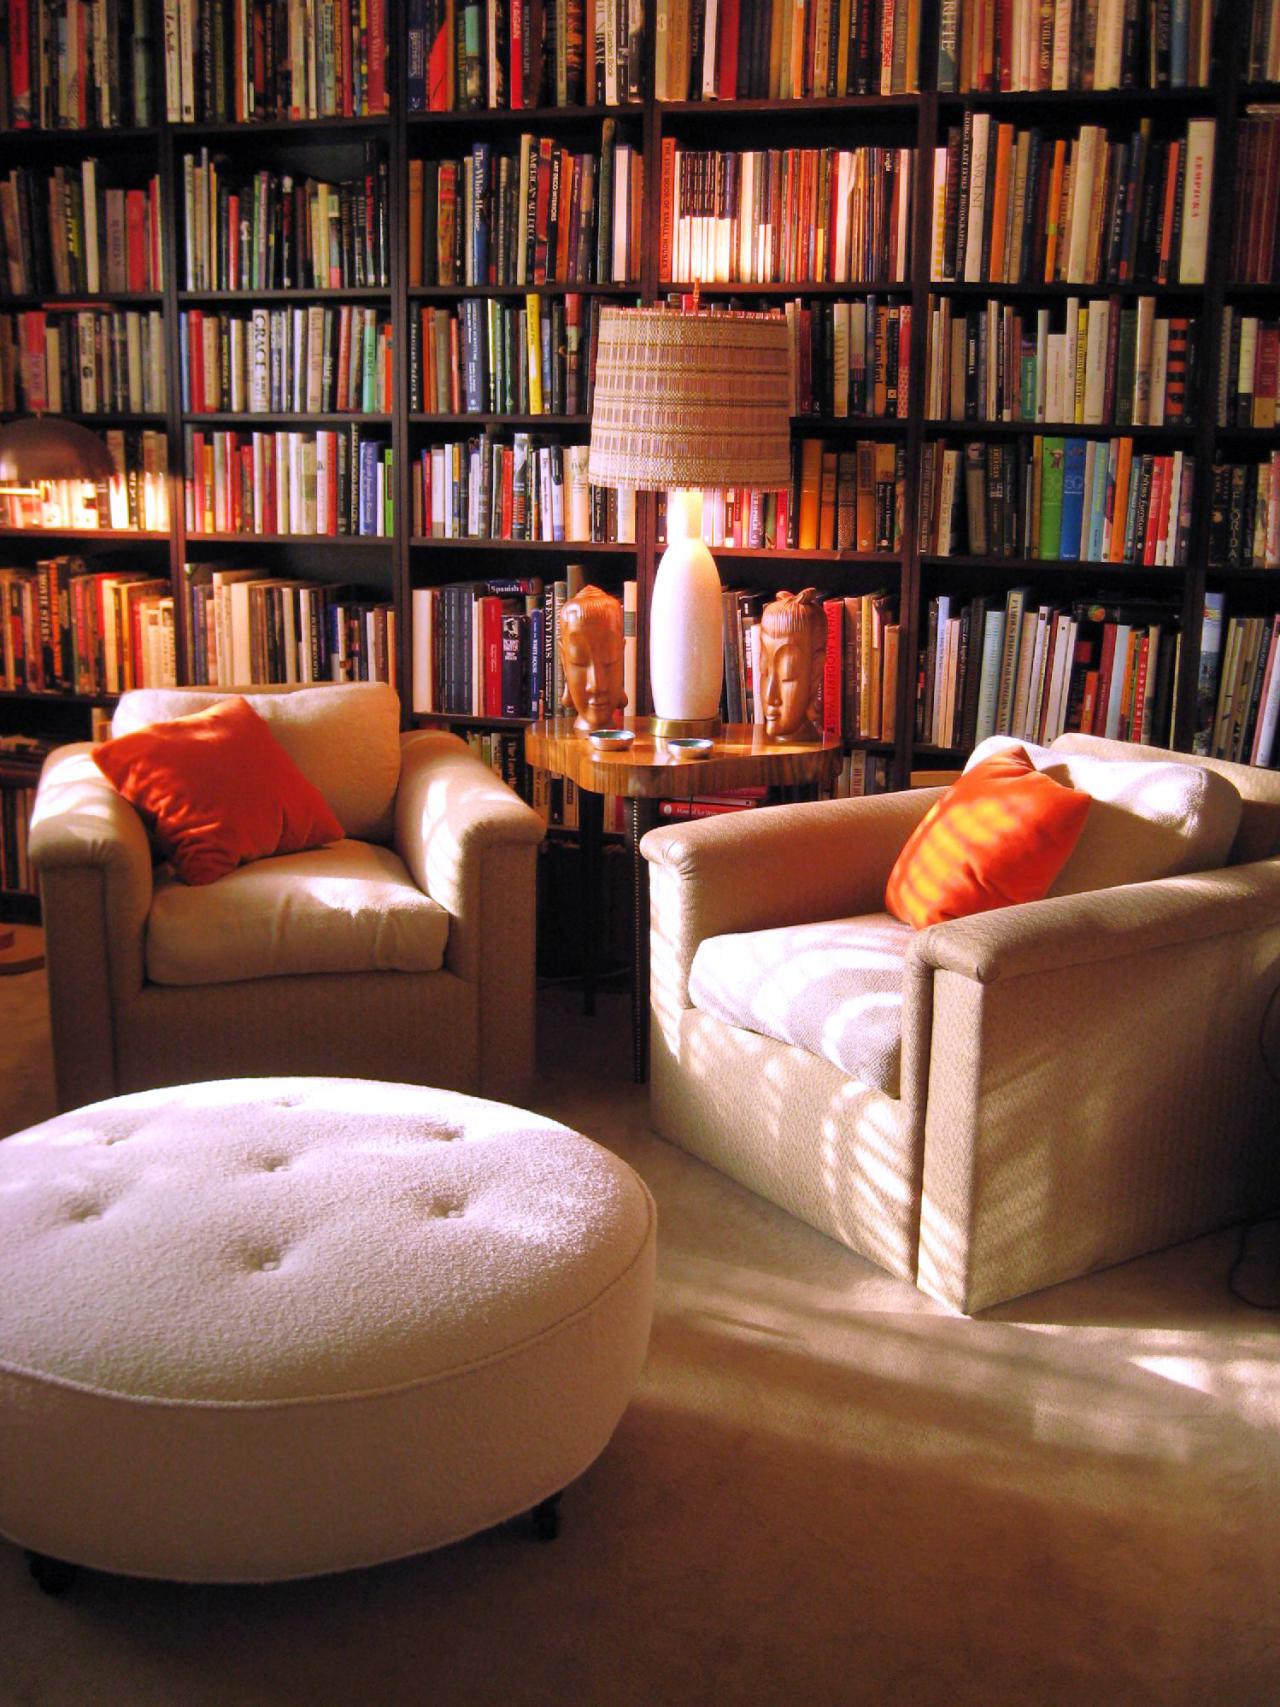 Contemporary Home Library Design: 11 Beautiful Home Libraries Book Lovers Will Adore